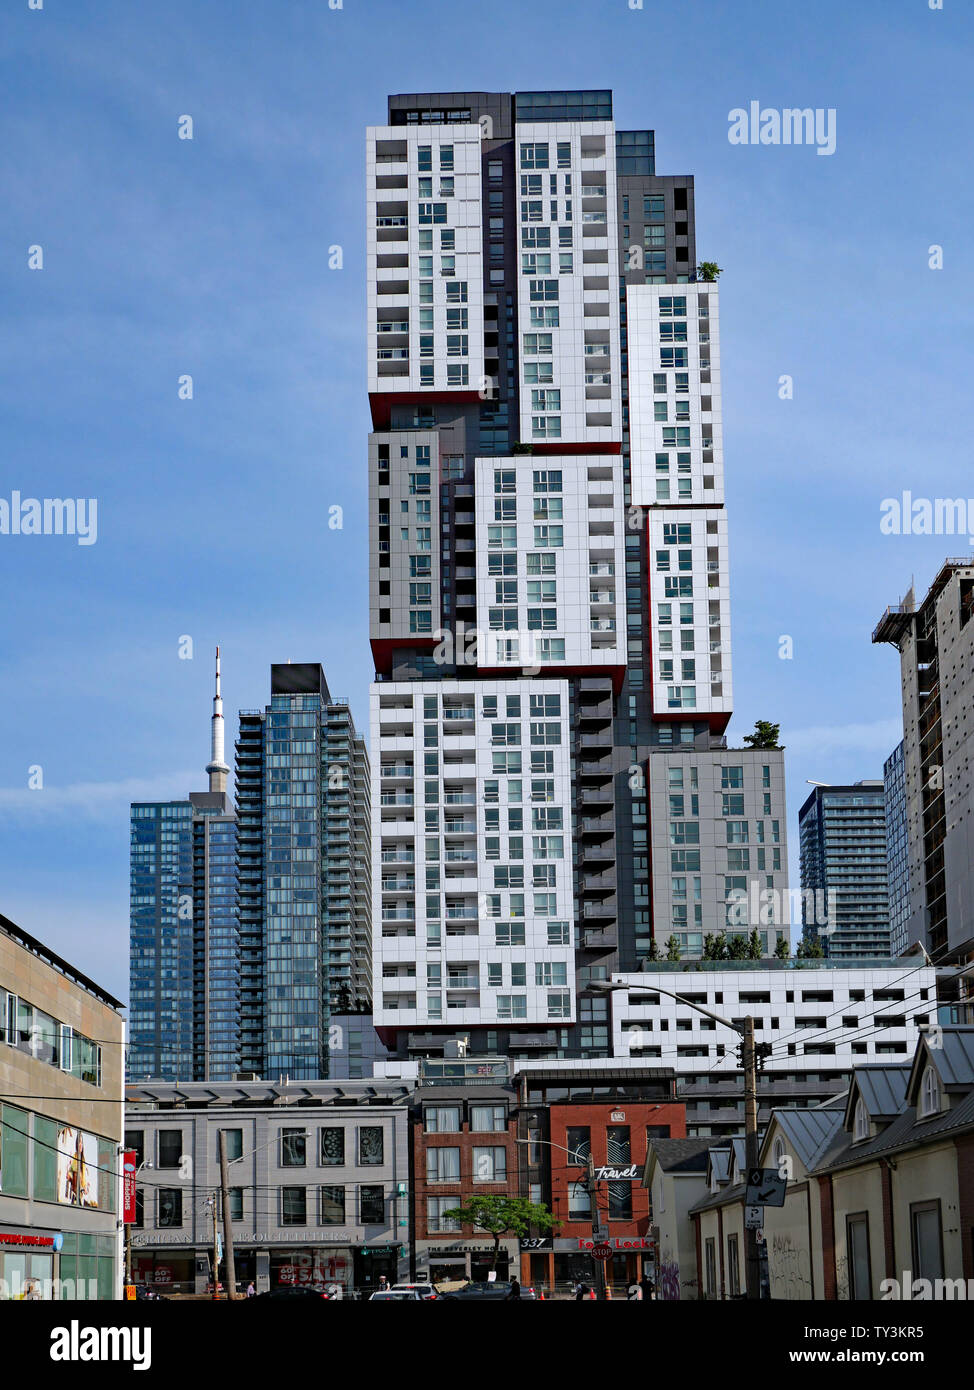 TORONTO - JUNE 2019: An eclectic mix of architecture on